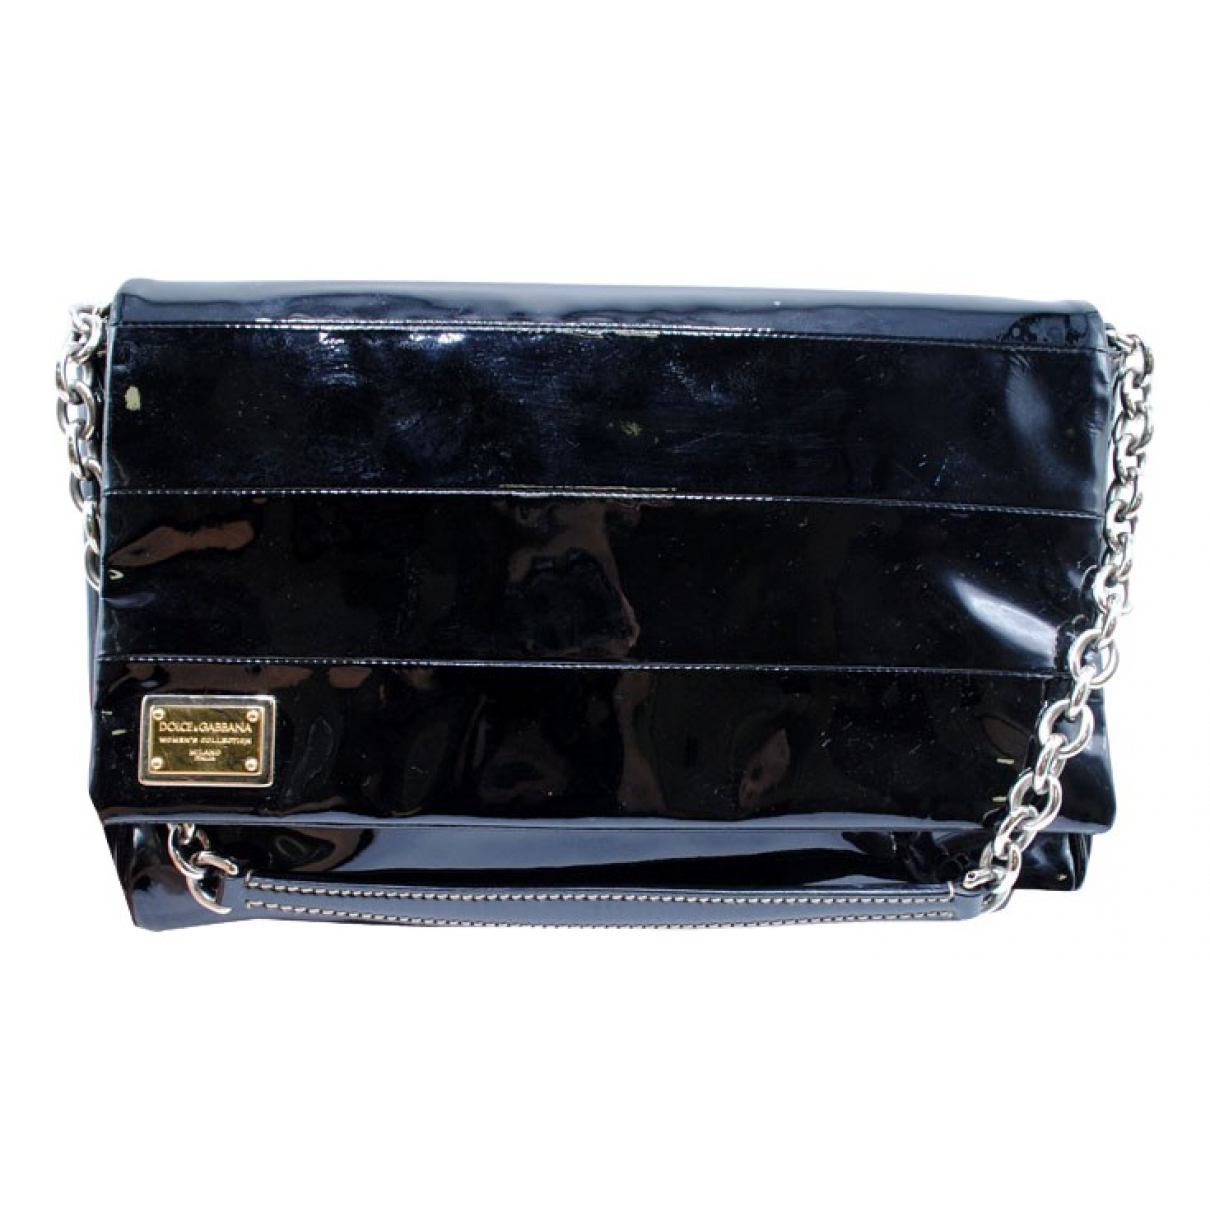 Dolce & Gabbana \N Black Patent leather Clutch bag for Women \N